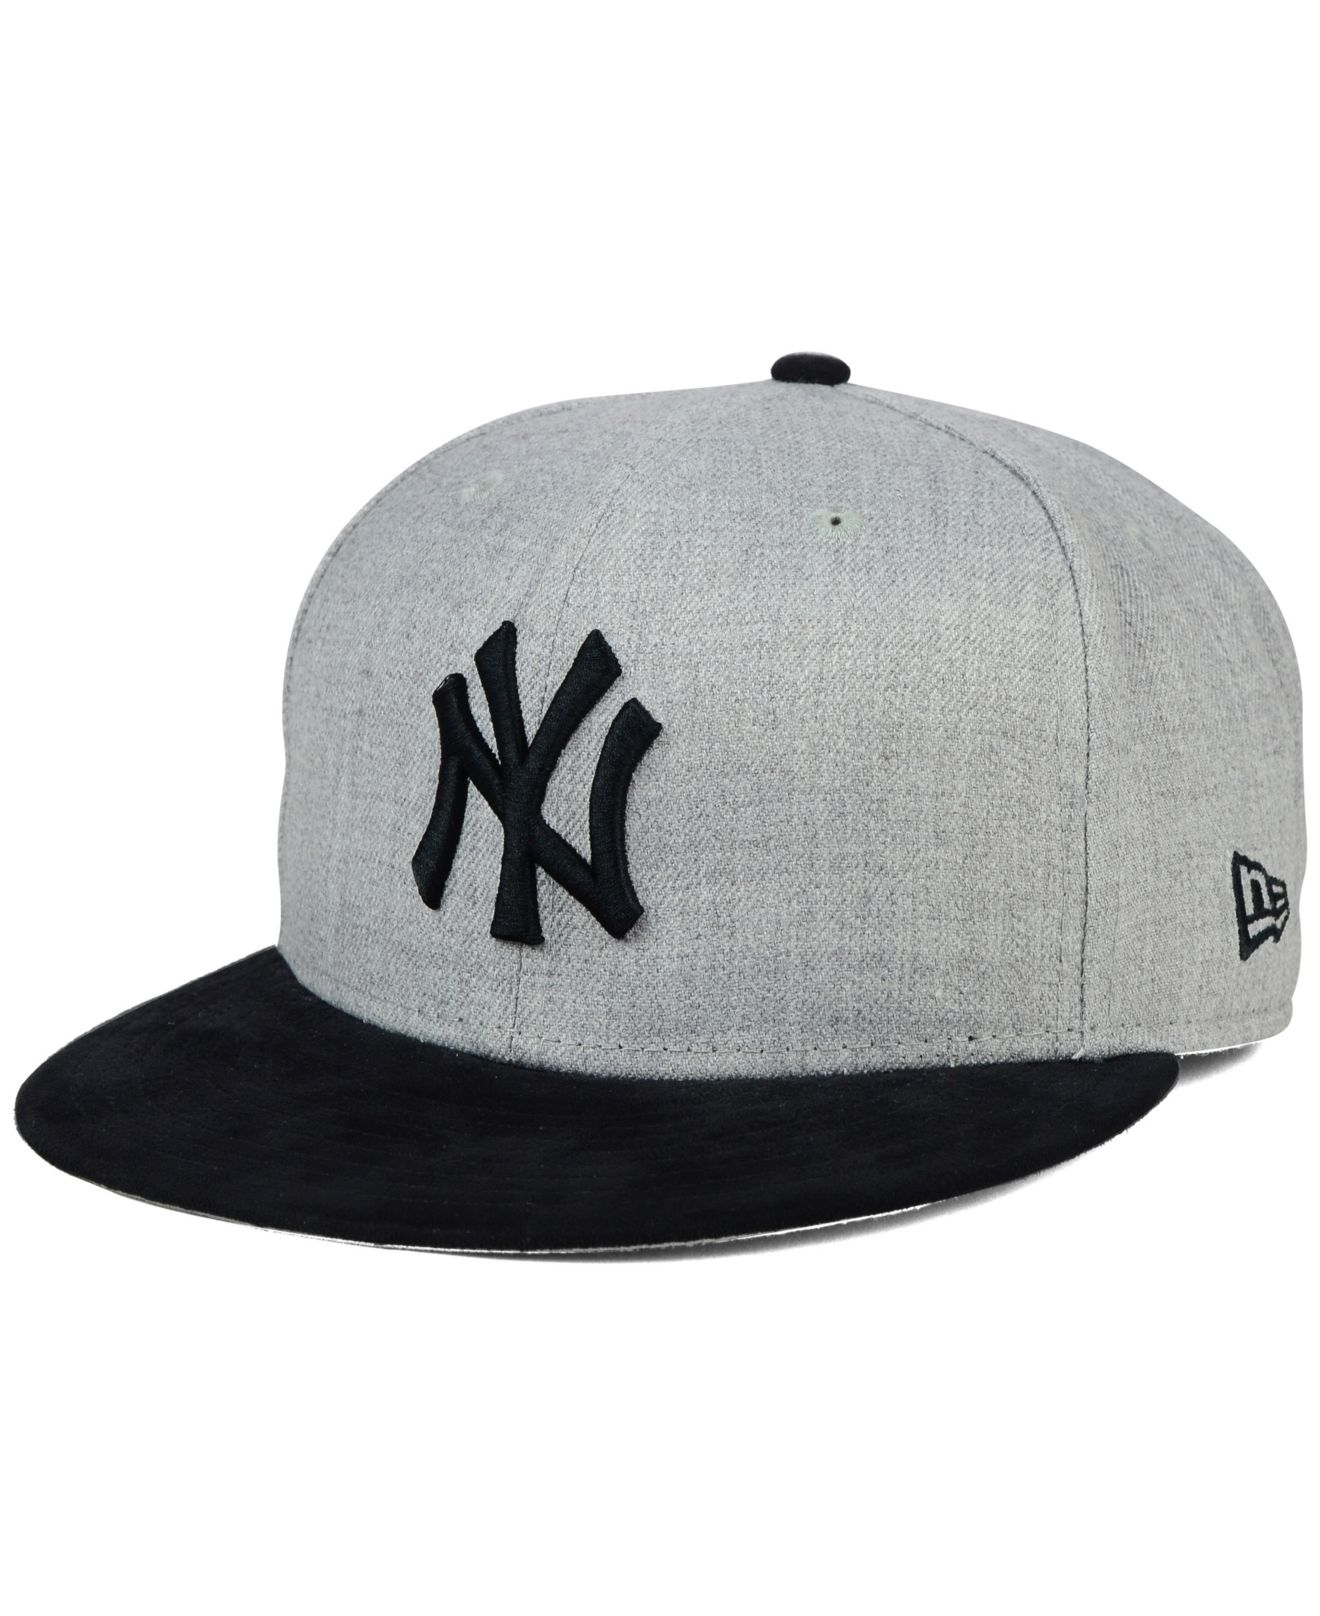 HEATHER MIX 9FIFTY NEW YORK YANKEES - ACCESSORIES - Hats New Era L0dEytDCzY